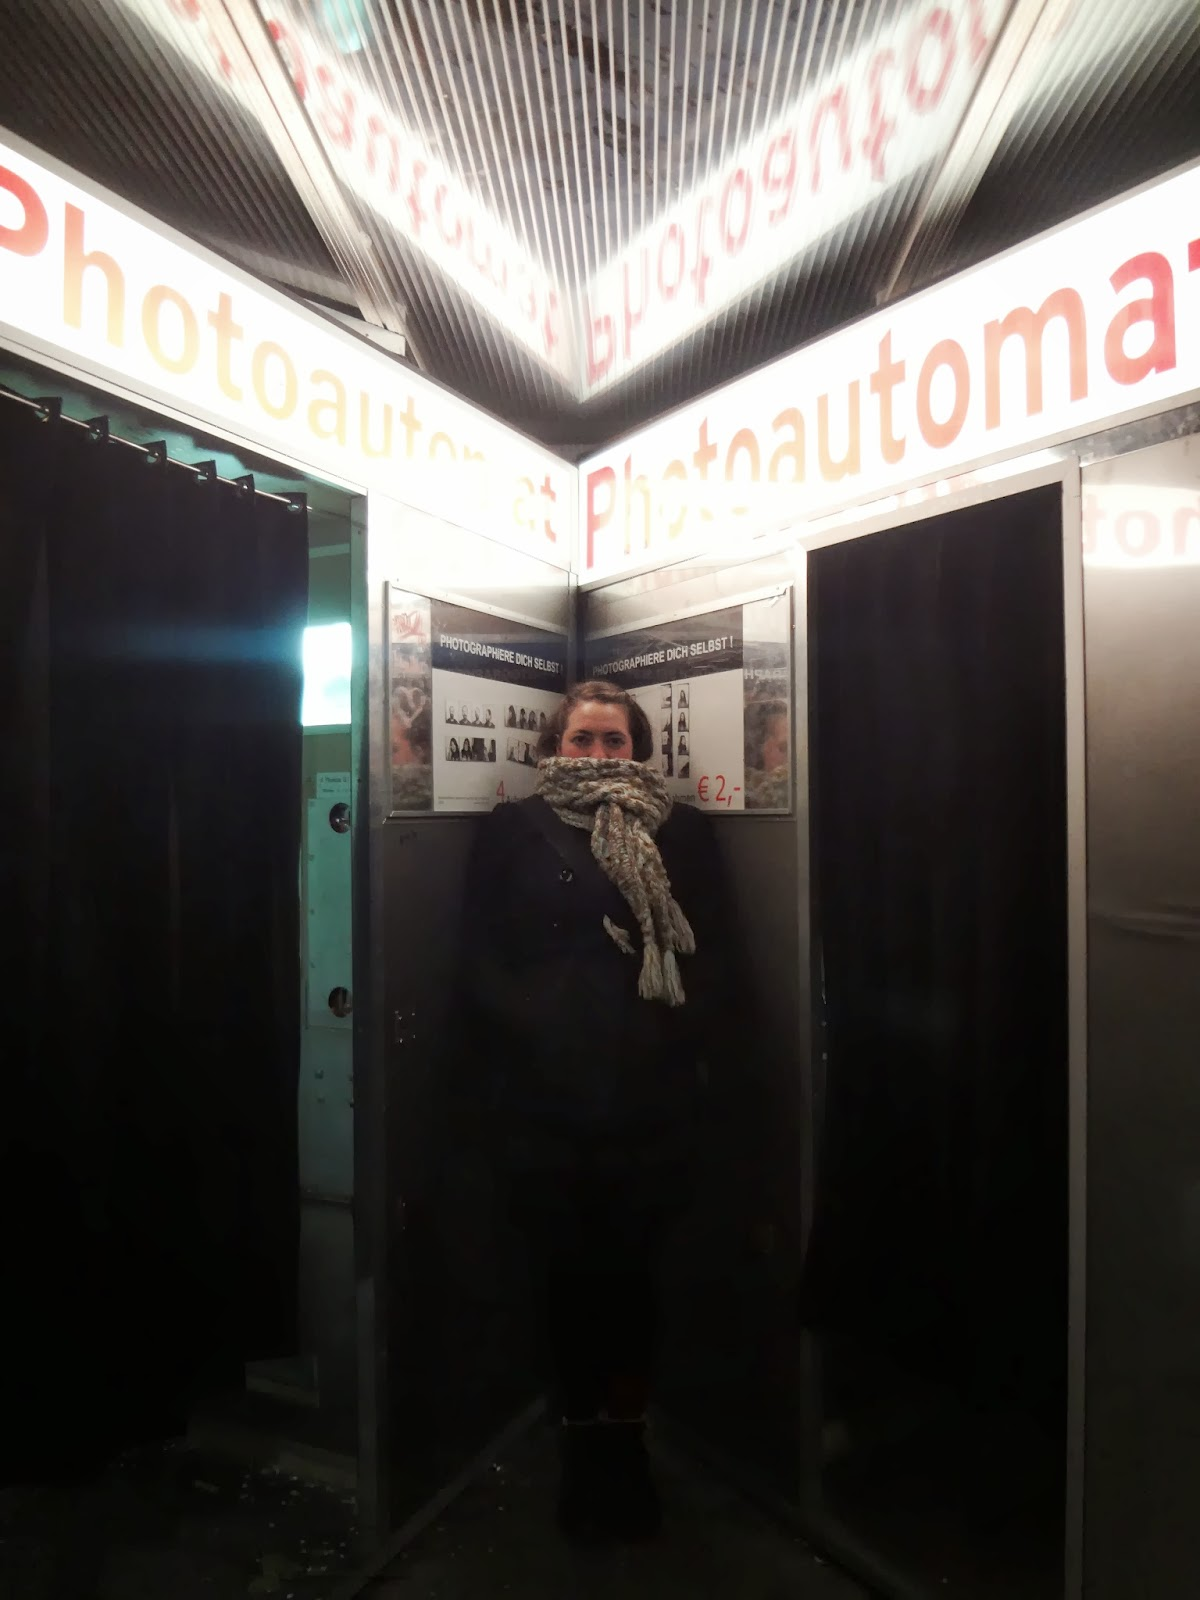 Berlin Photo Booth on Kastanienallee